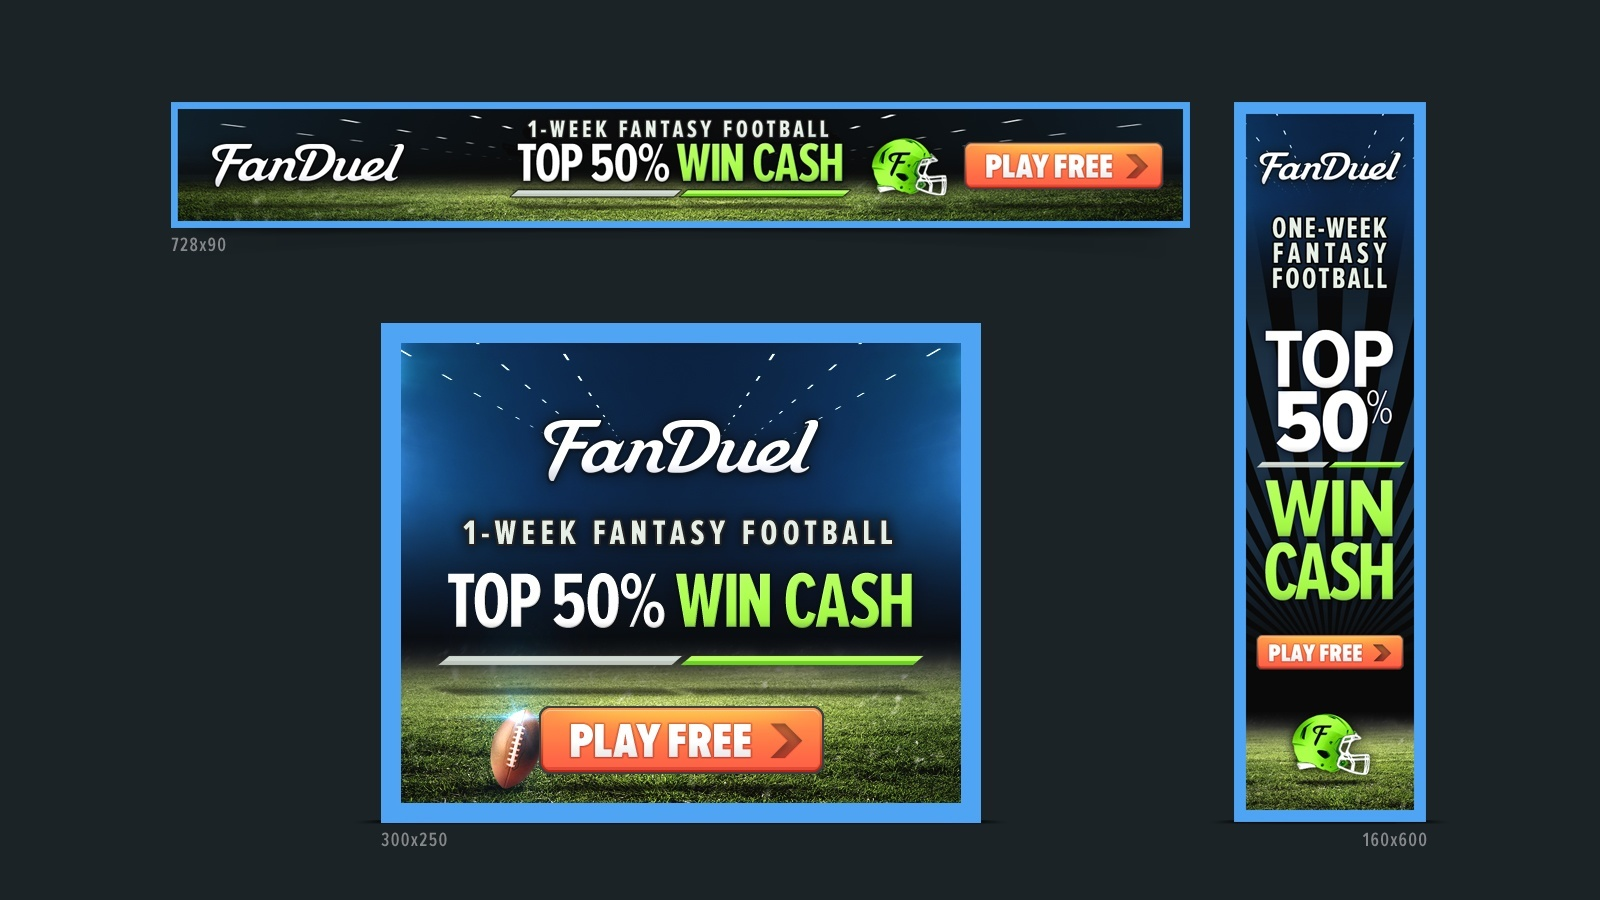 RE EVOLUTION // FanDuel - Digital Advertising, Design, Branding